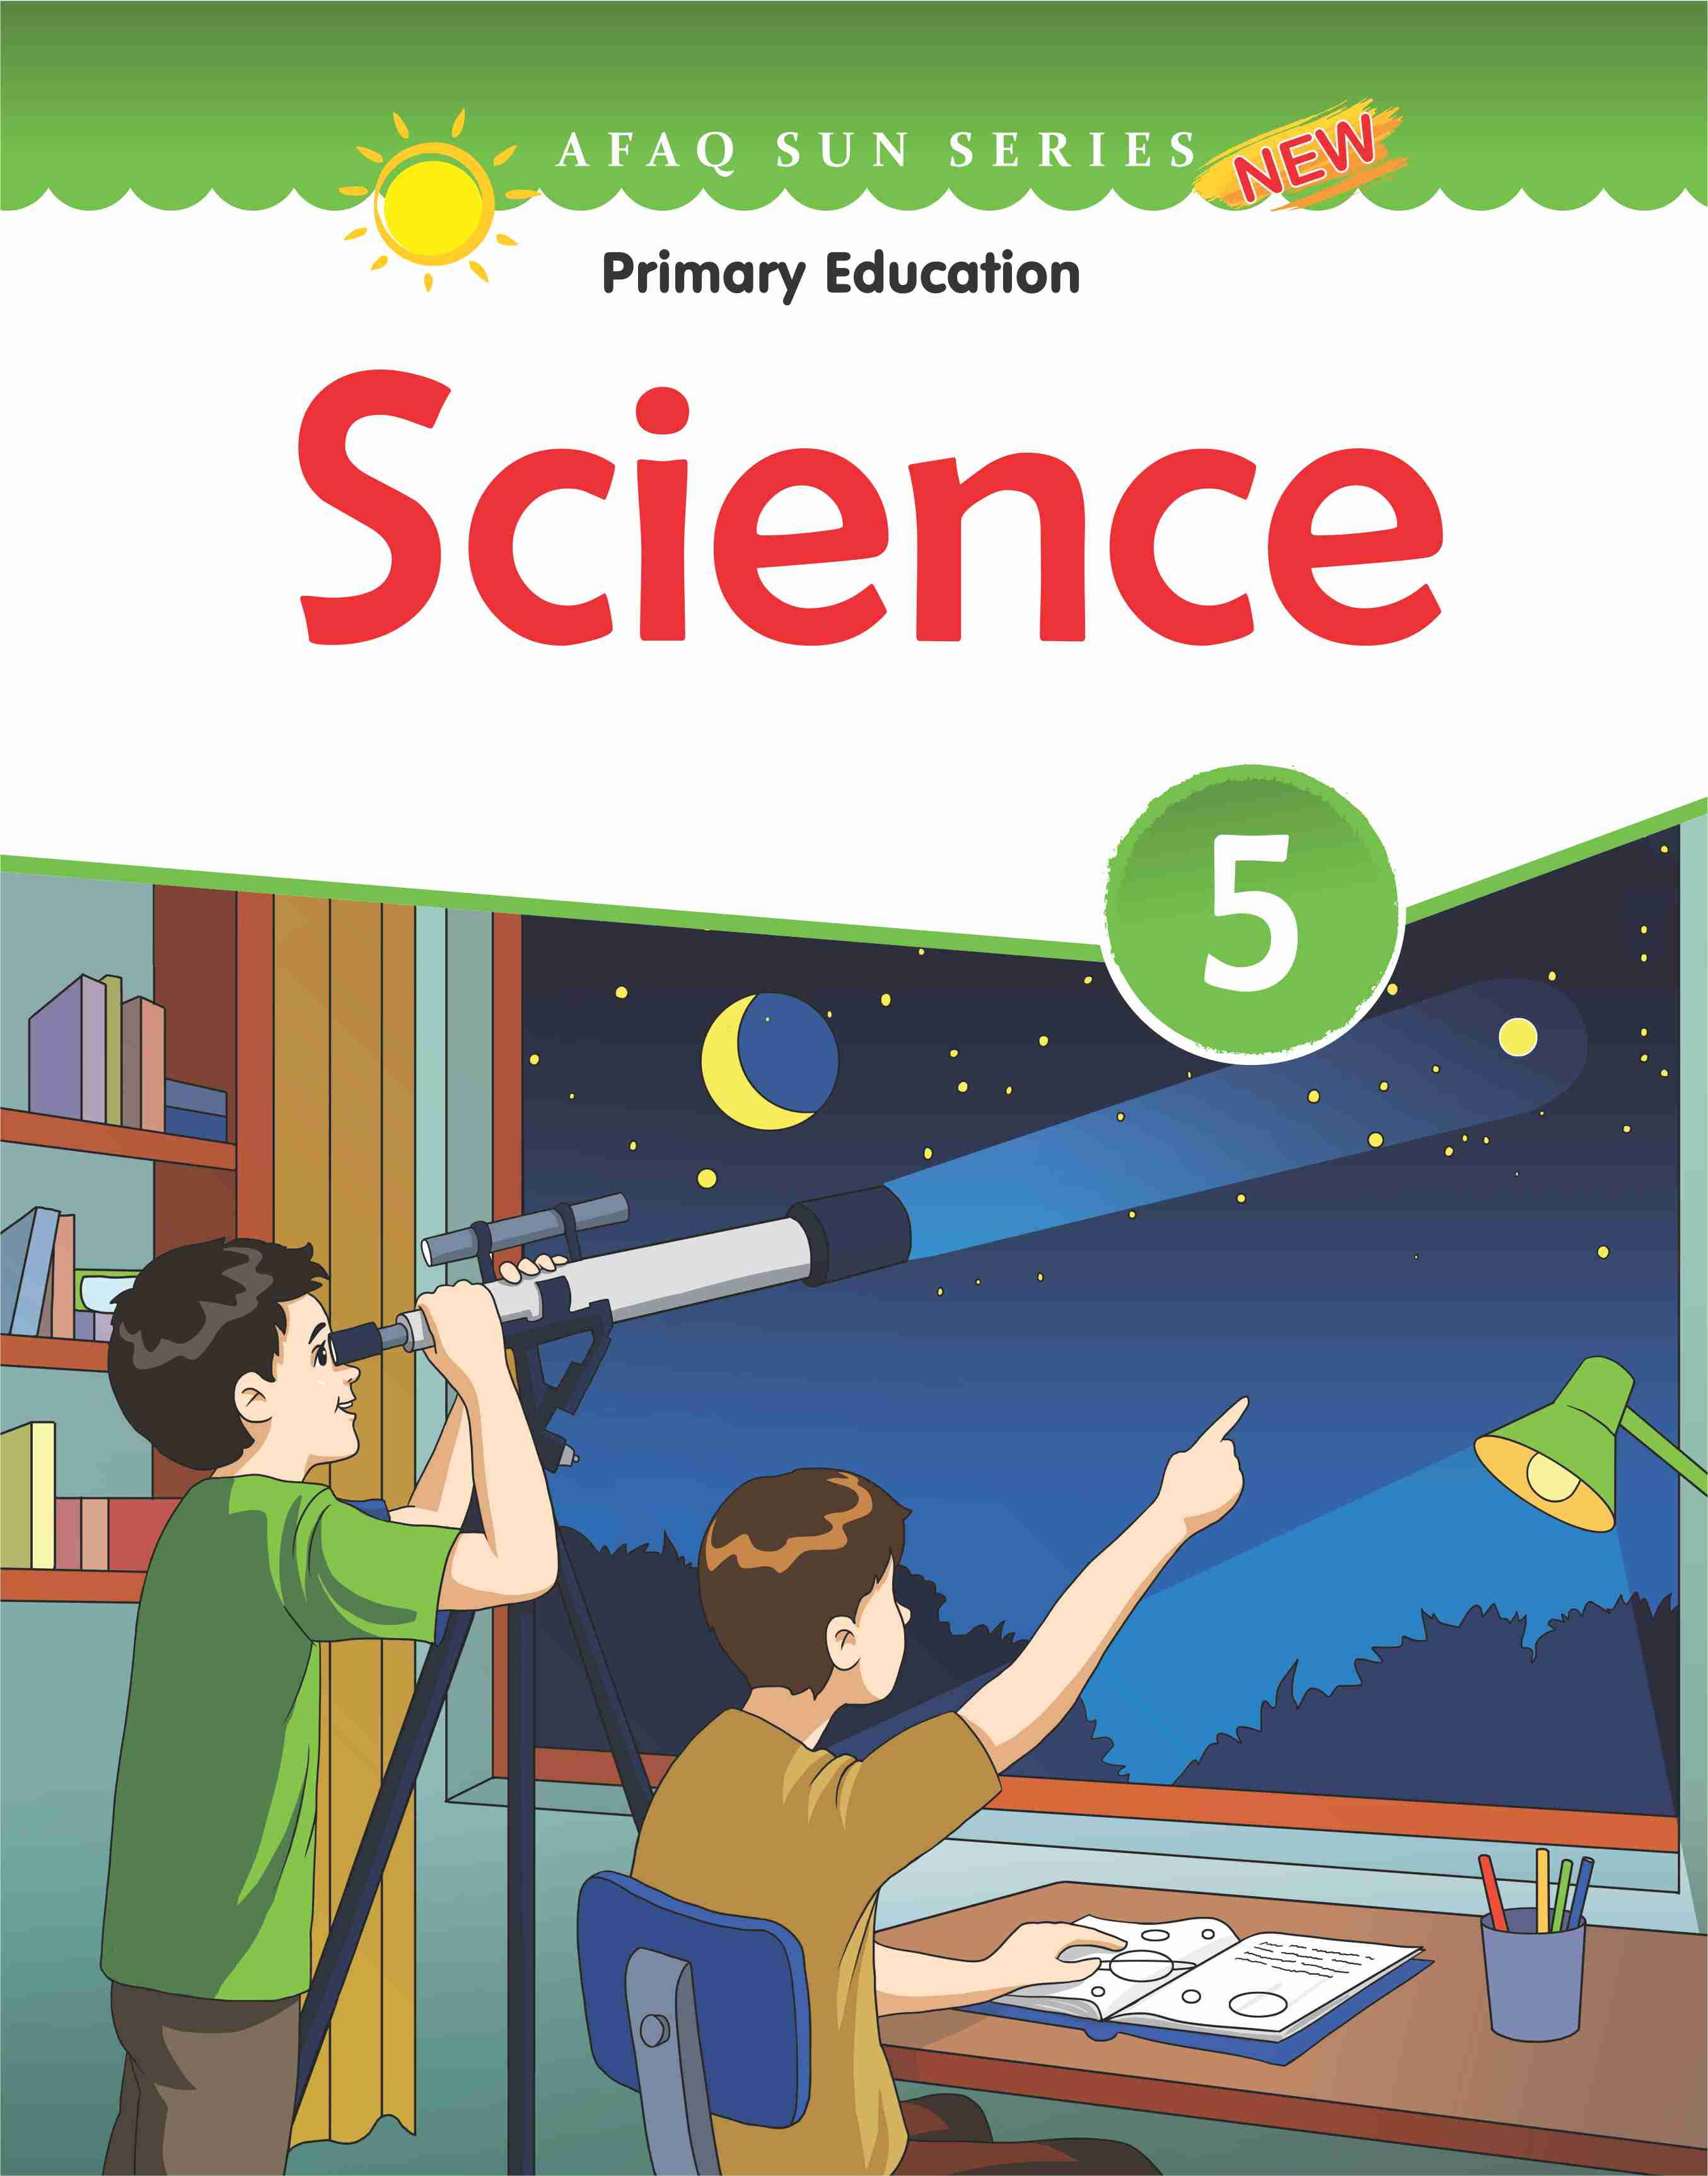 Title New sun series Science_5